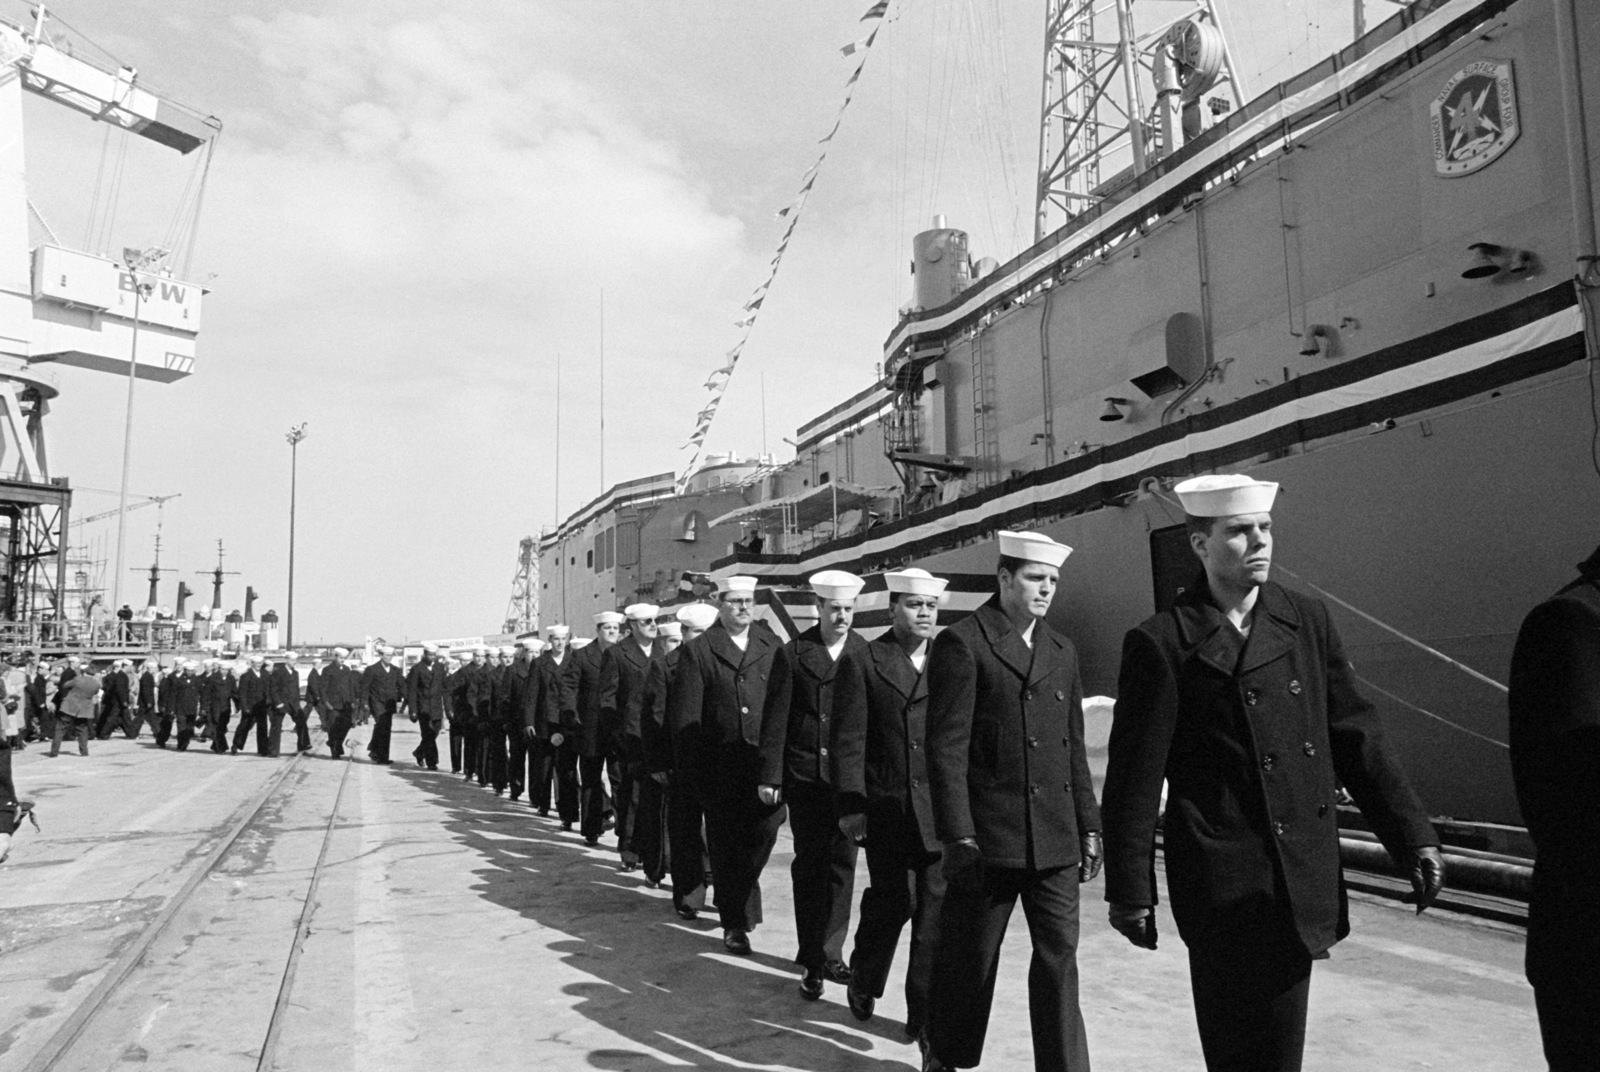 Crew members go aboard the ship in single file during the commissioning of the guided missile frigate USS KAUFFMAN (FFG 59)